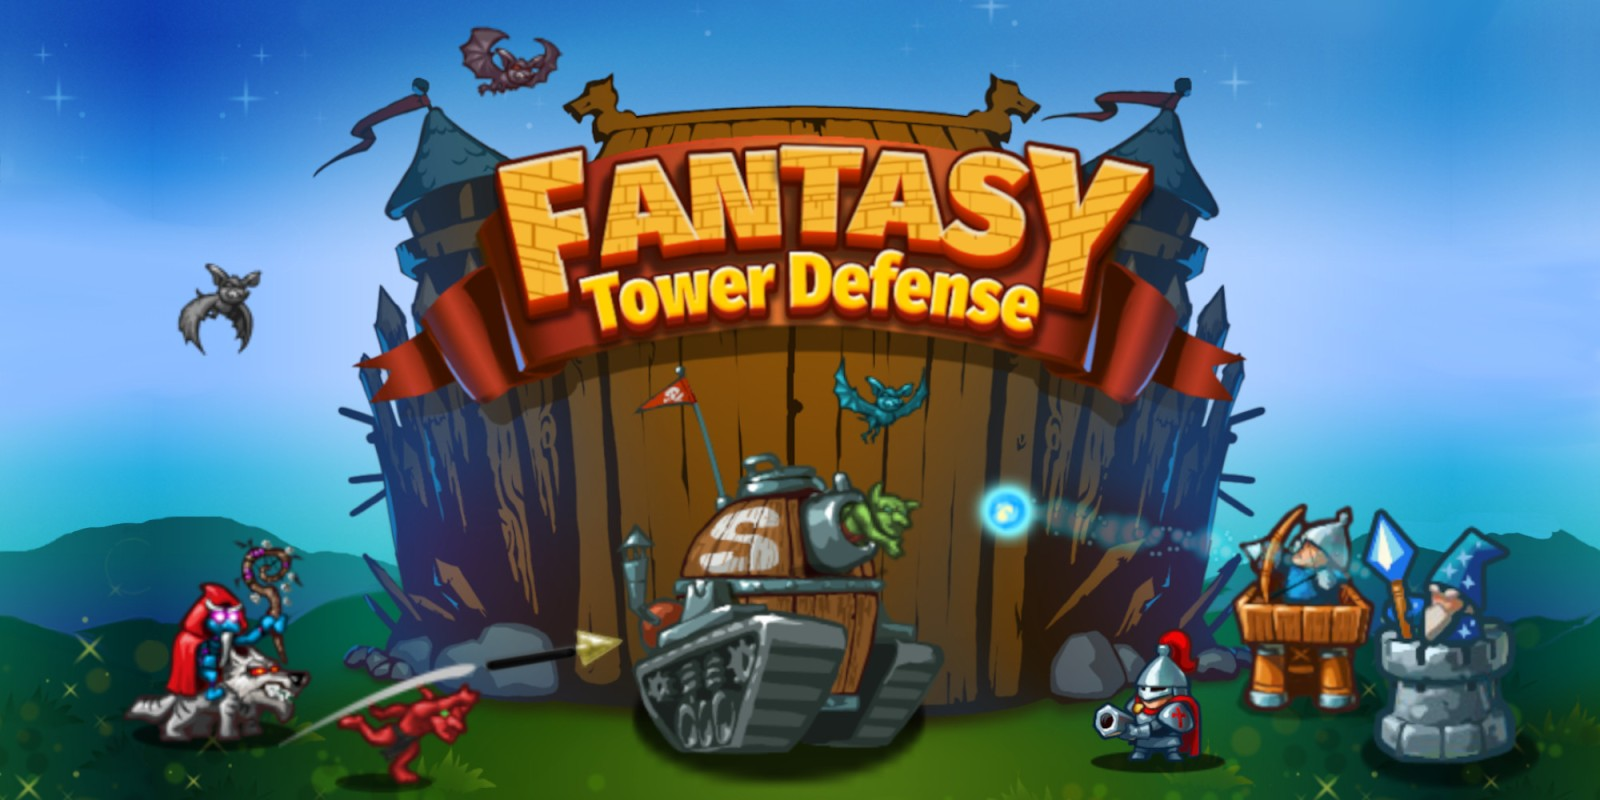 Fantasy Tower Defense